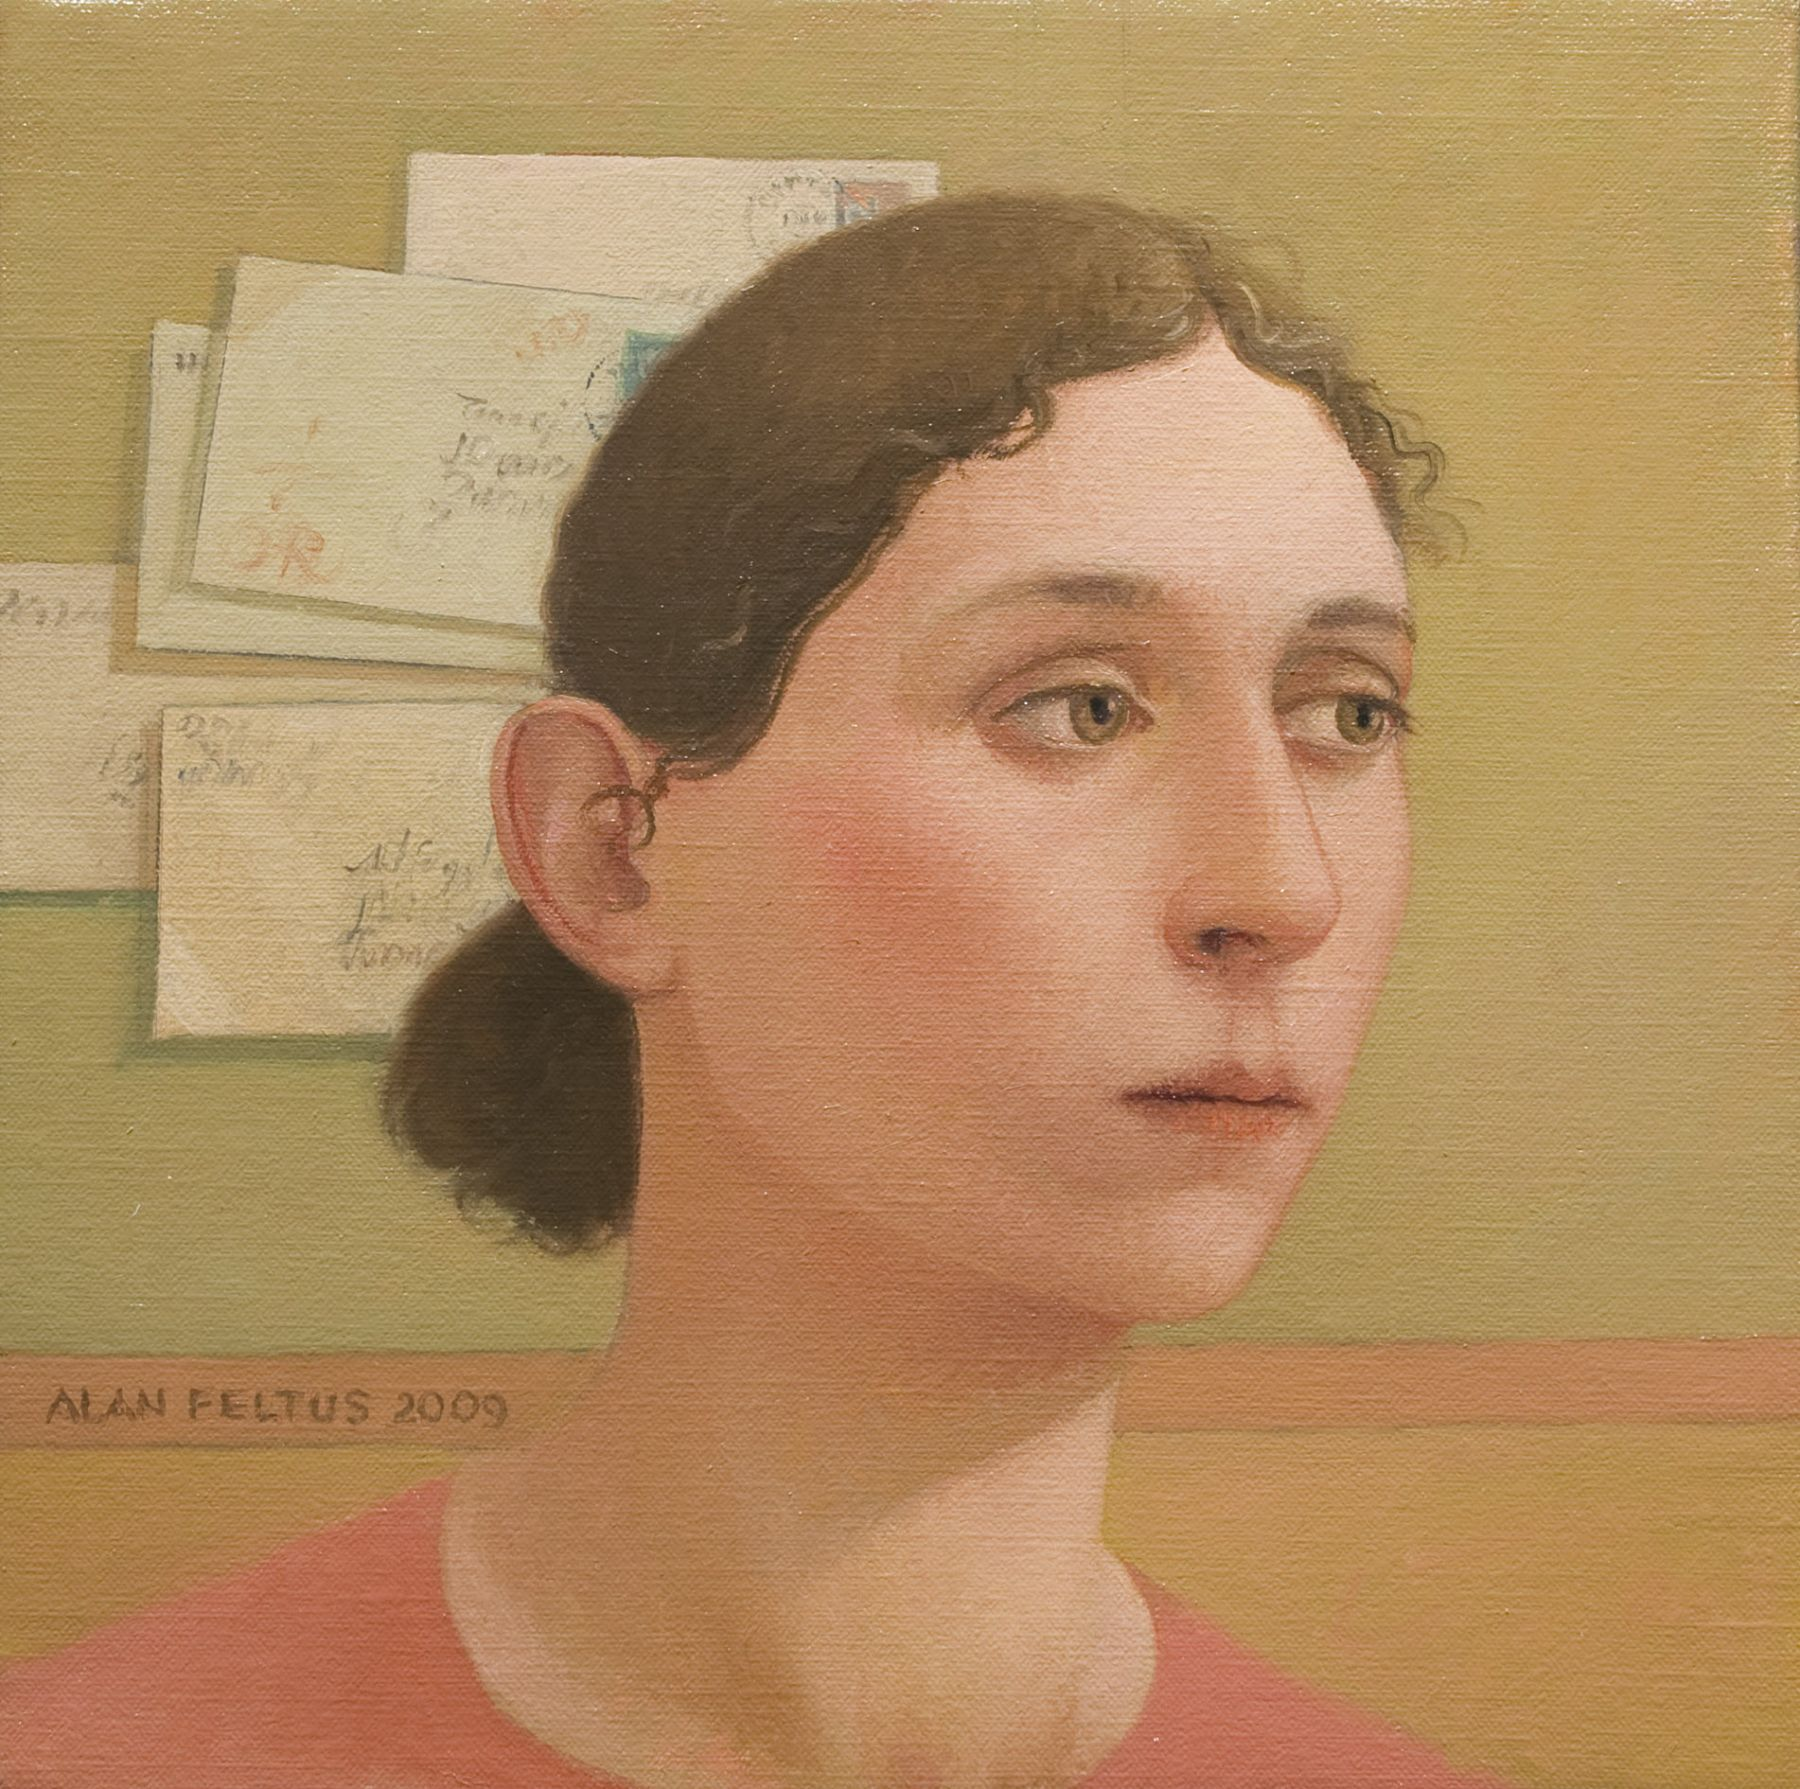 alan feltus, Anna Maria, 2009, oil on canvas, 11 3/4 x 11 3/4 inches